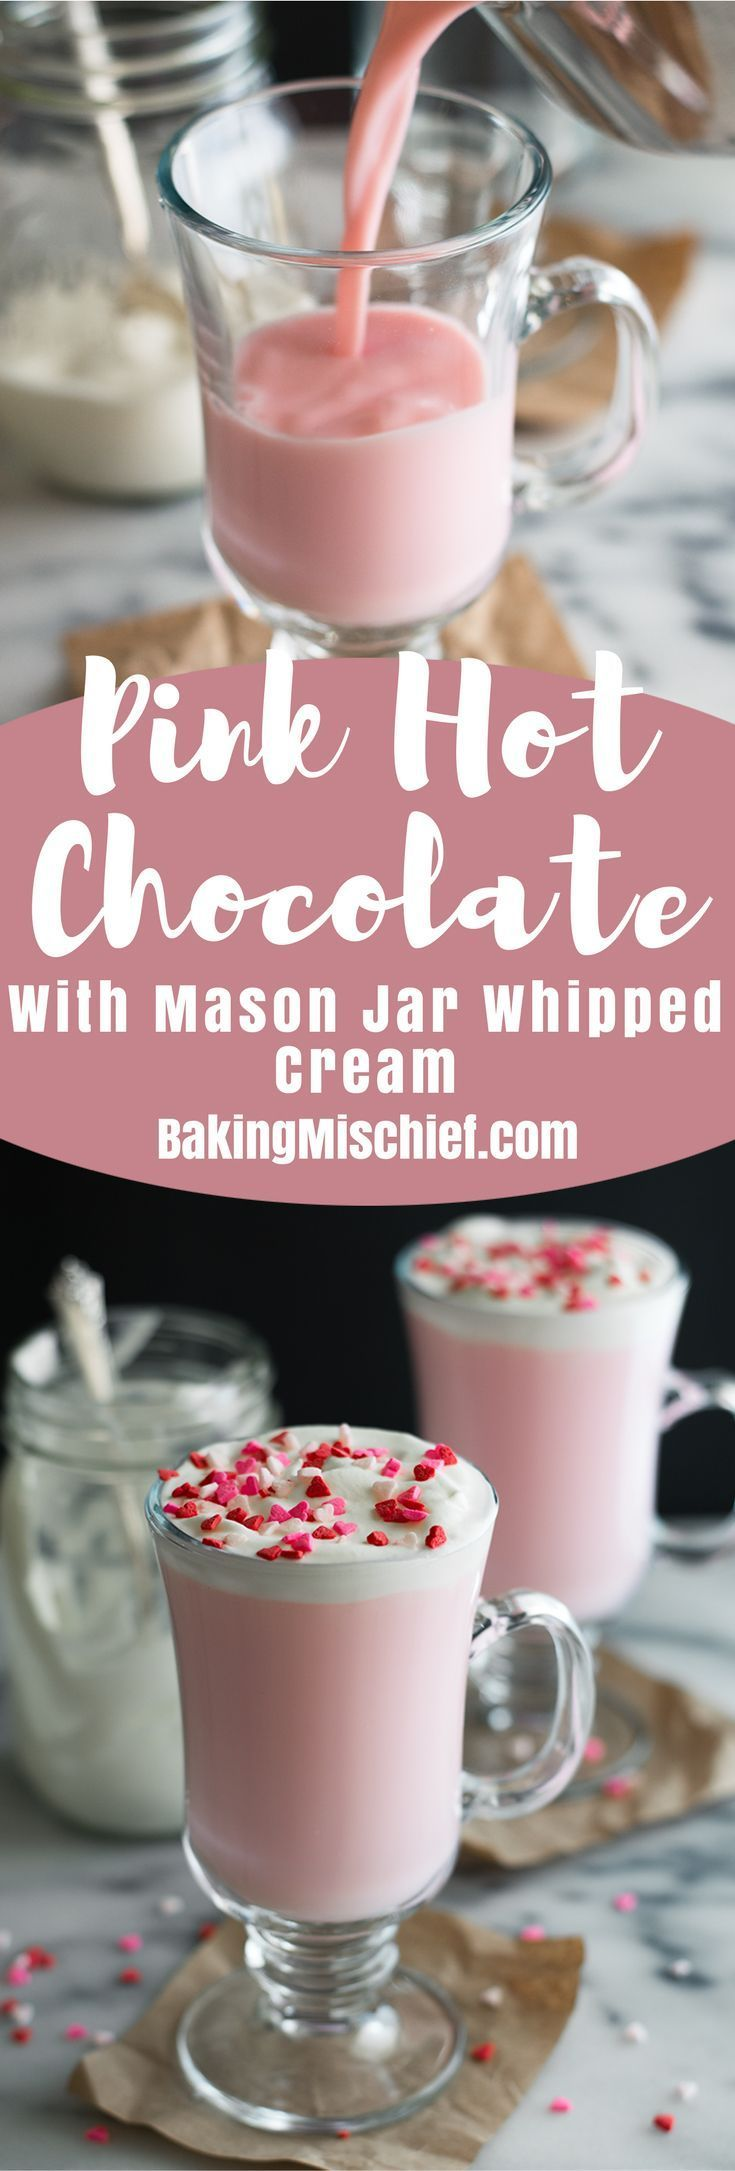 77 best Cocoa and Hot Chocolate images on Pinterest | Breakfast ...